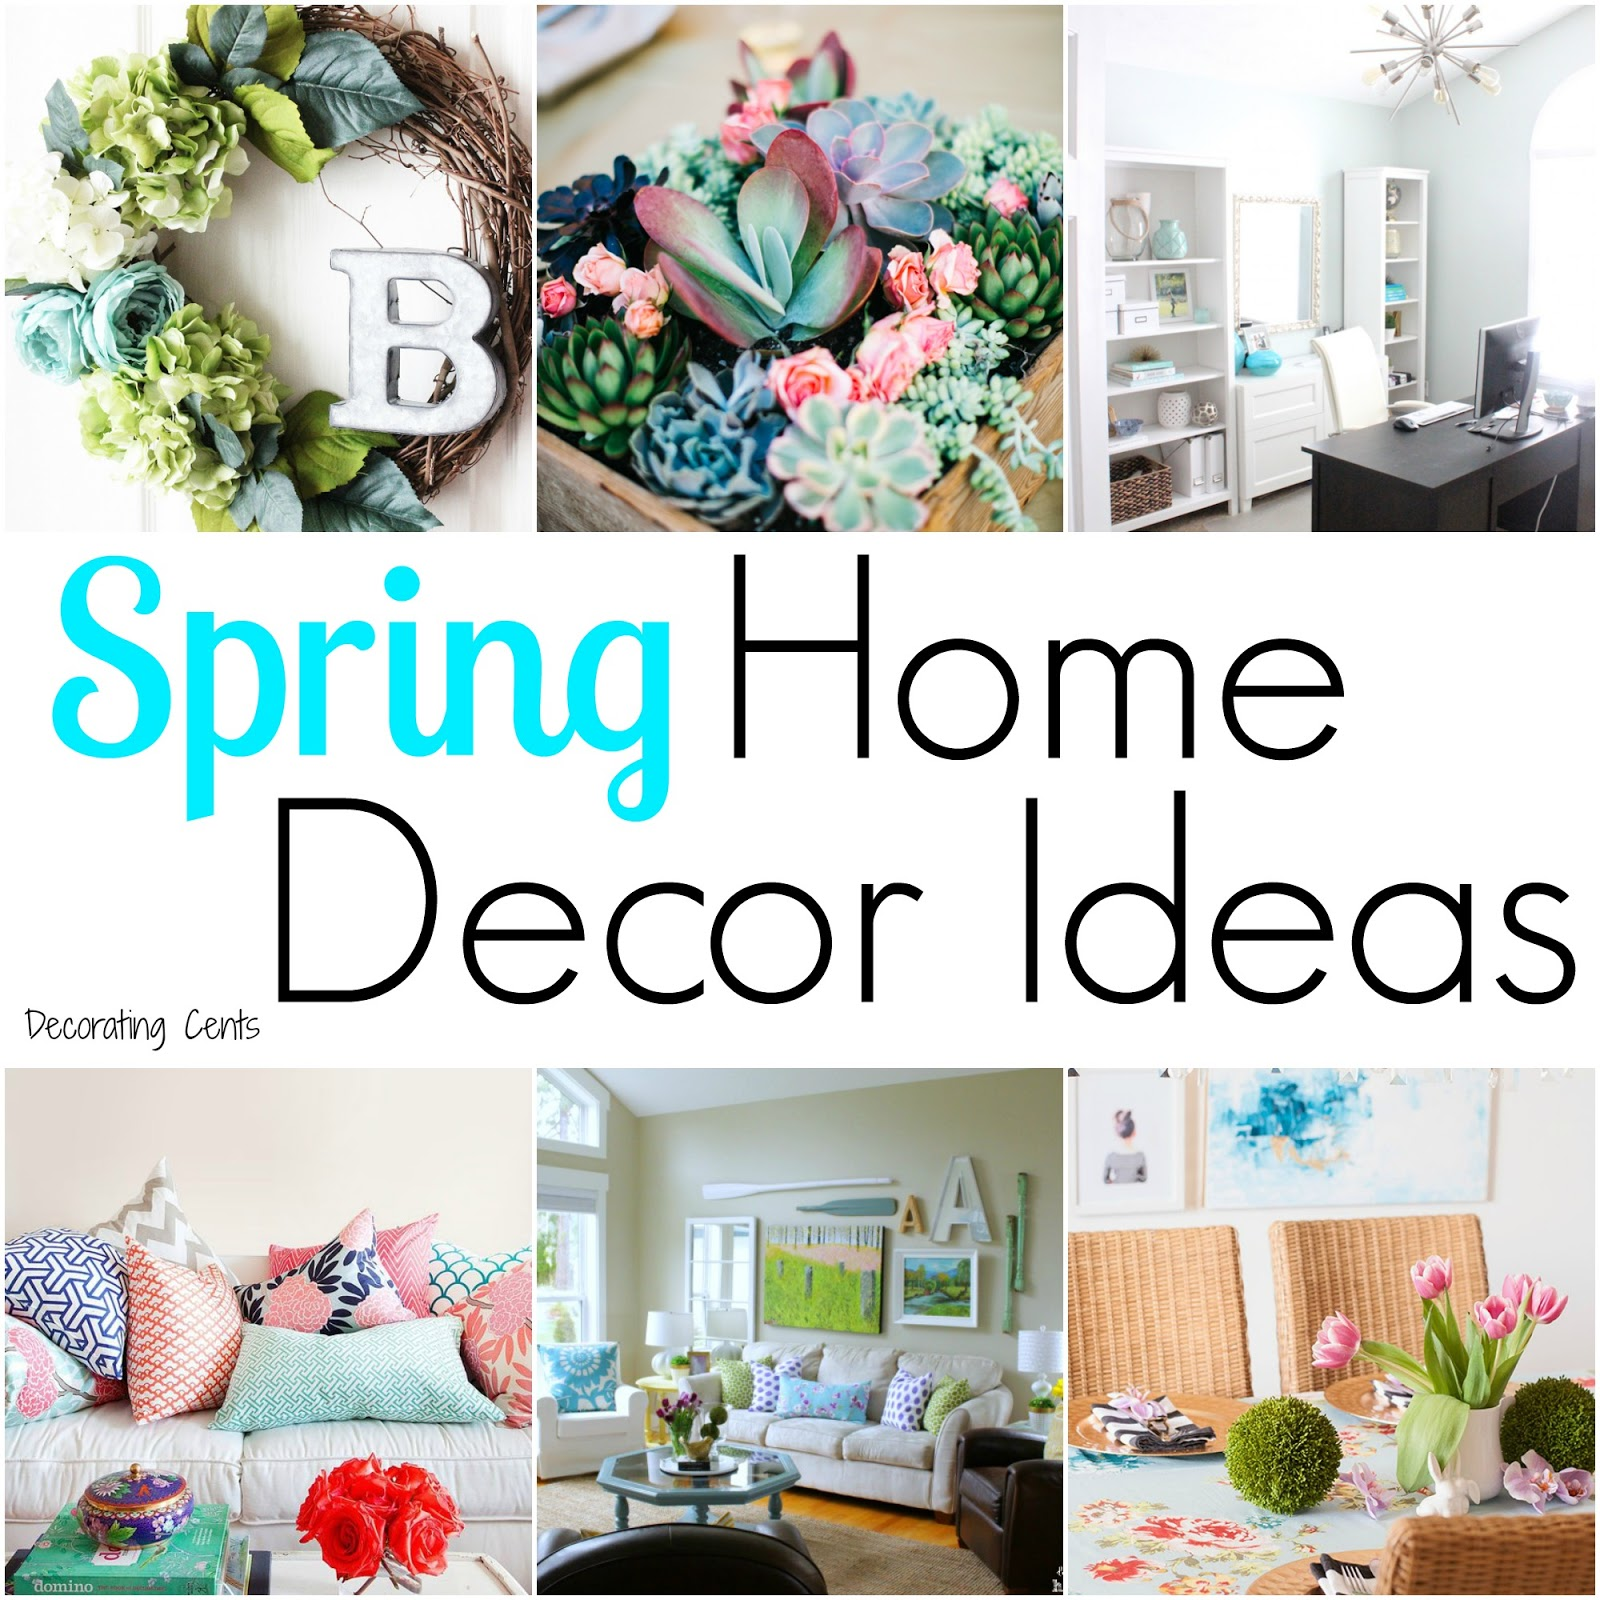 Decorating cents spring home decor ideas for House decorating themes